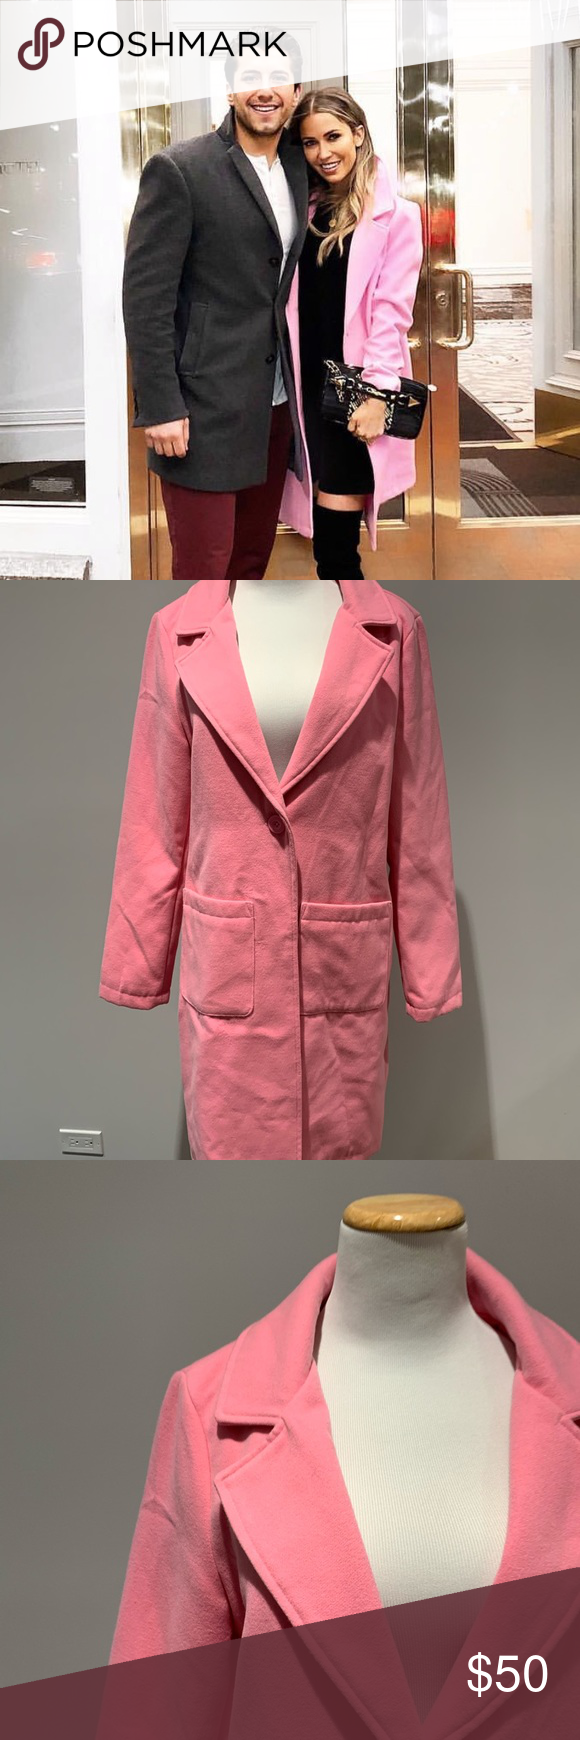 Target Wild Fable Pink Peacoat Women S Size Medium Peacoat Women Pink Peacoat Peacoat Womens [ 1740 x 580 Pixel ]